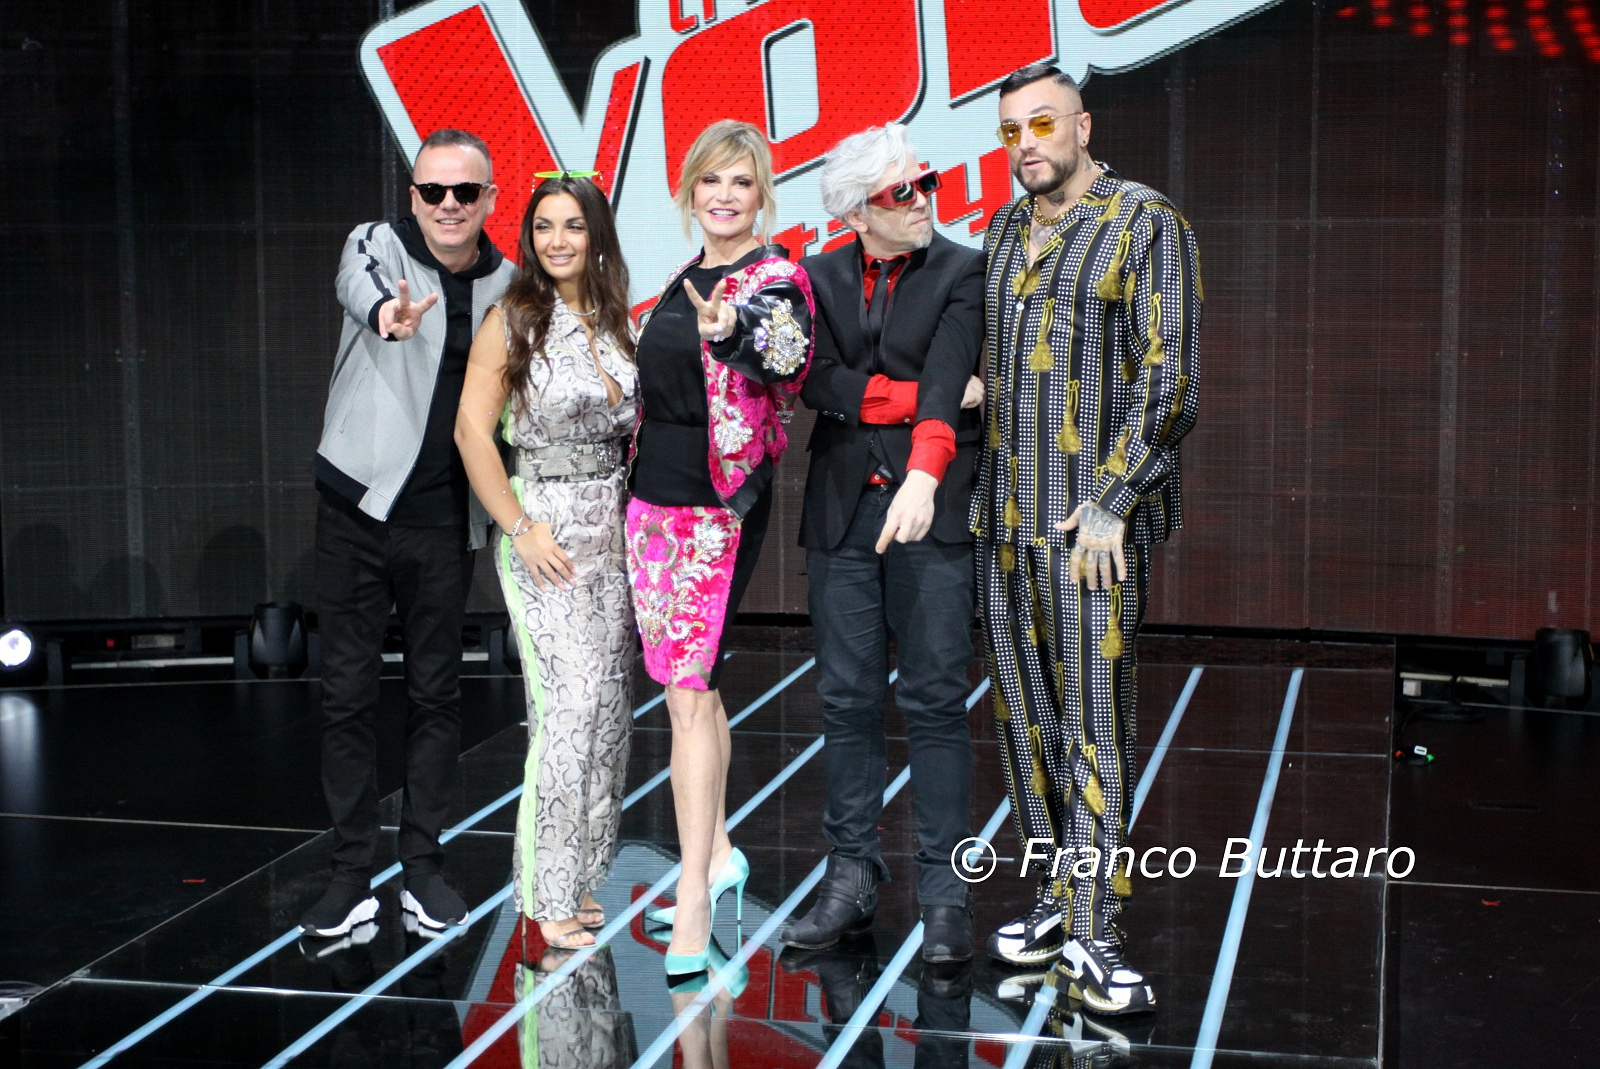 The Voice of Italy - 2019 - The Voice of Italy - 2019